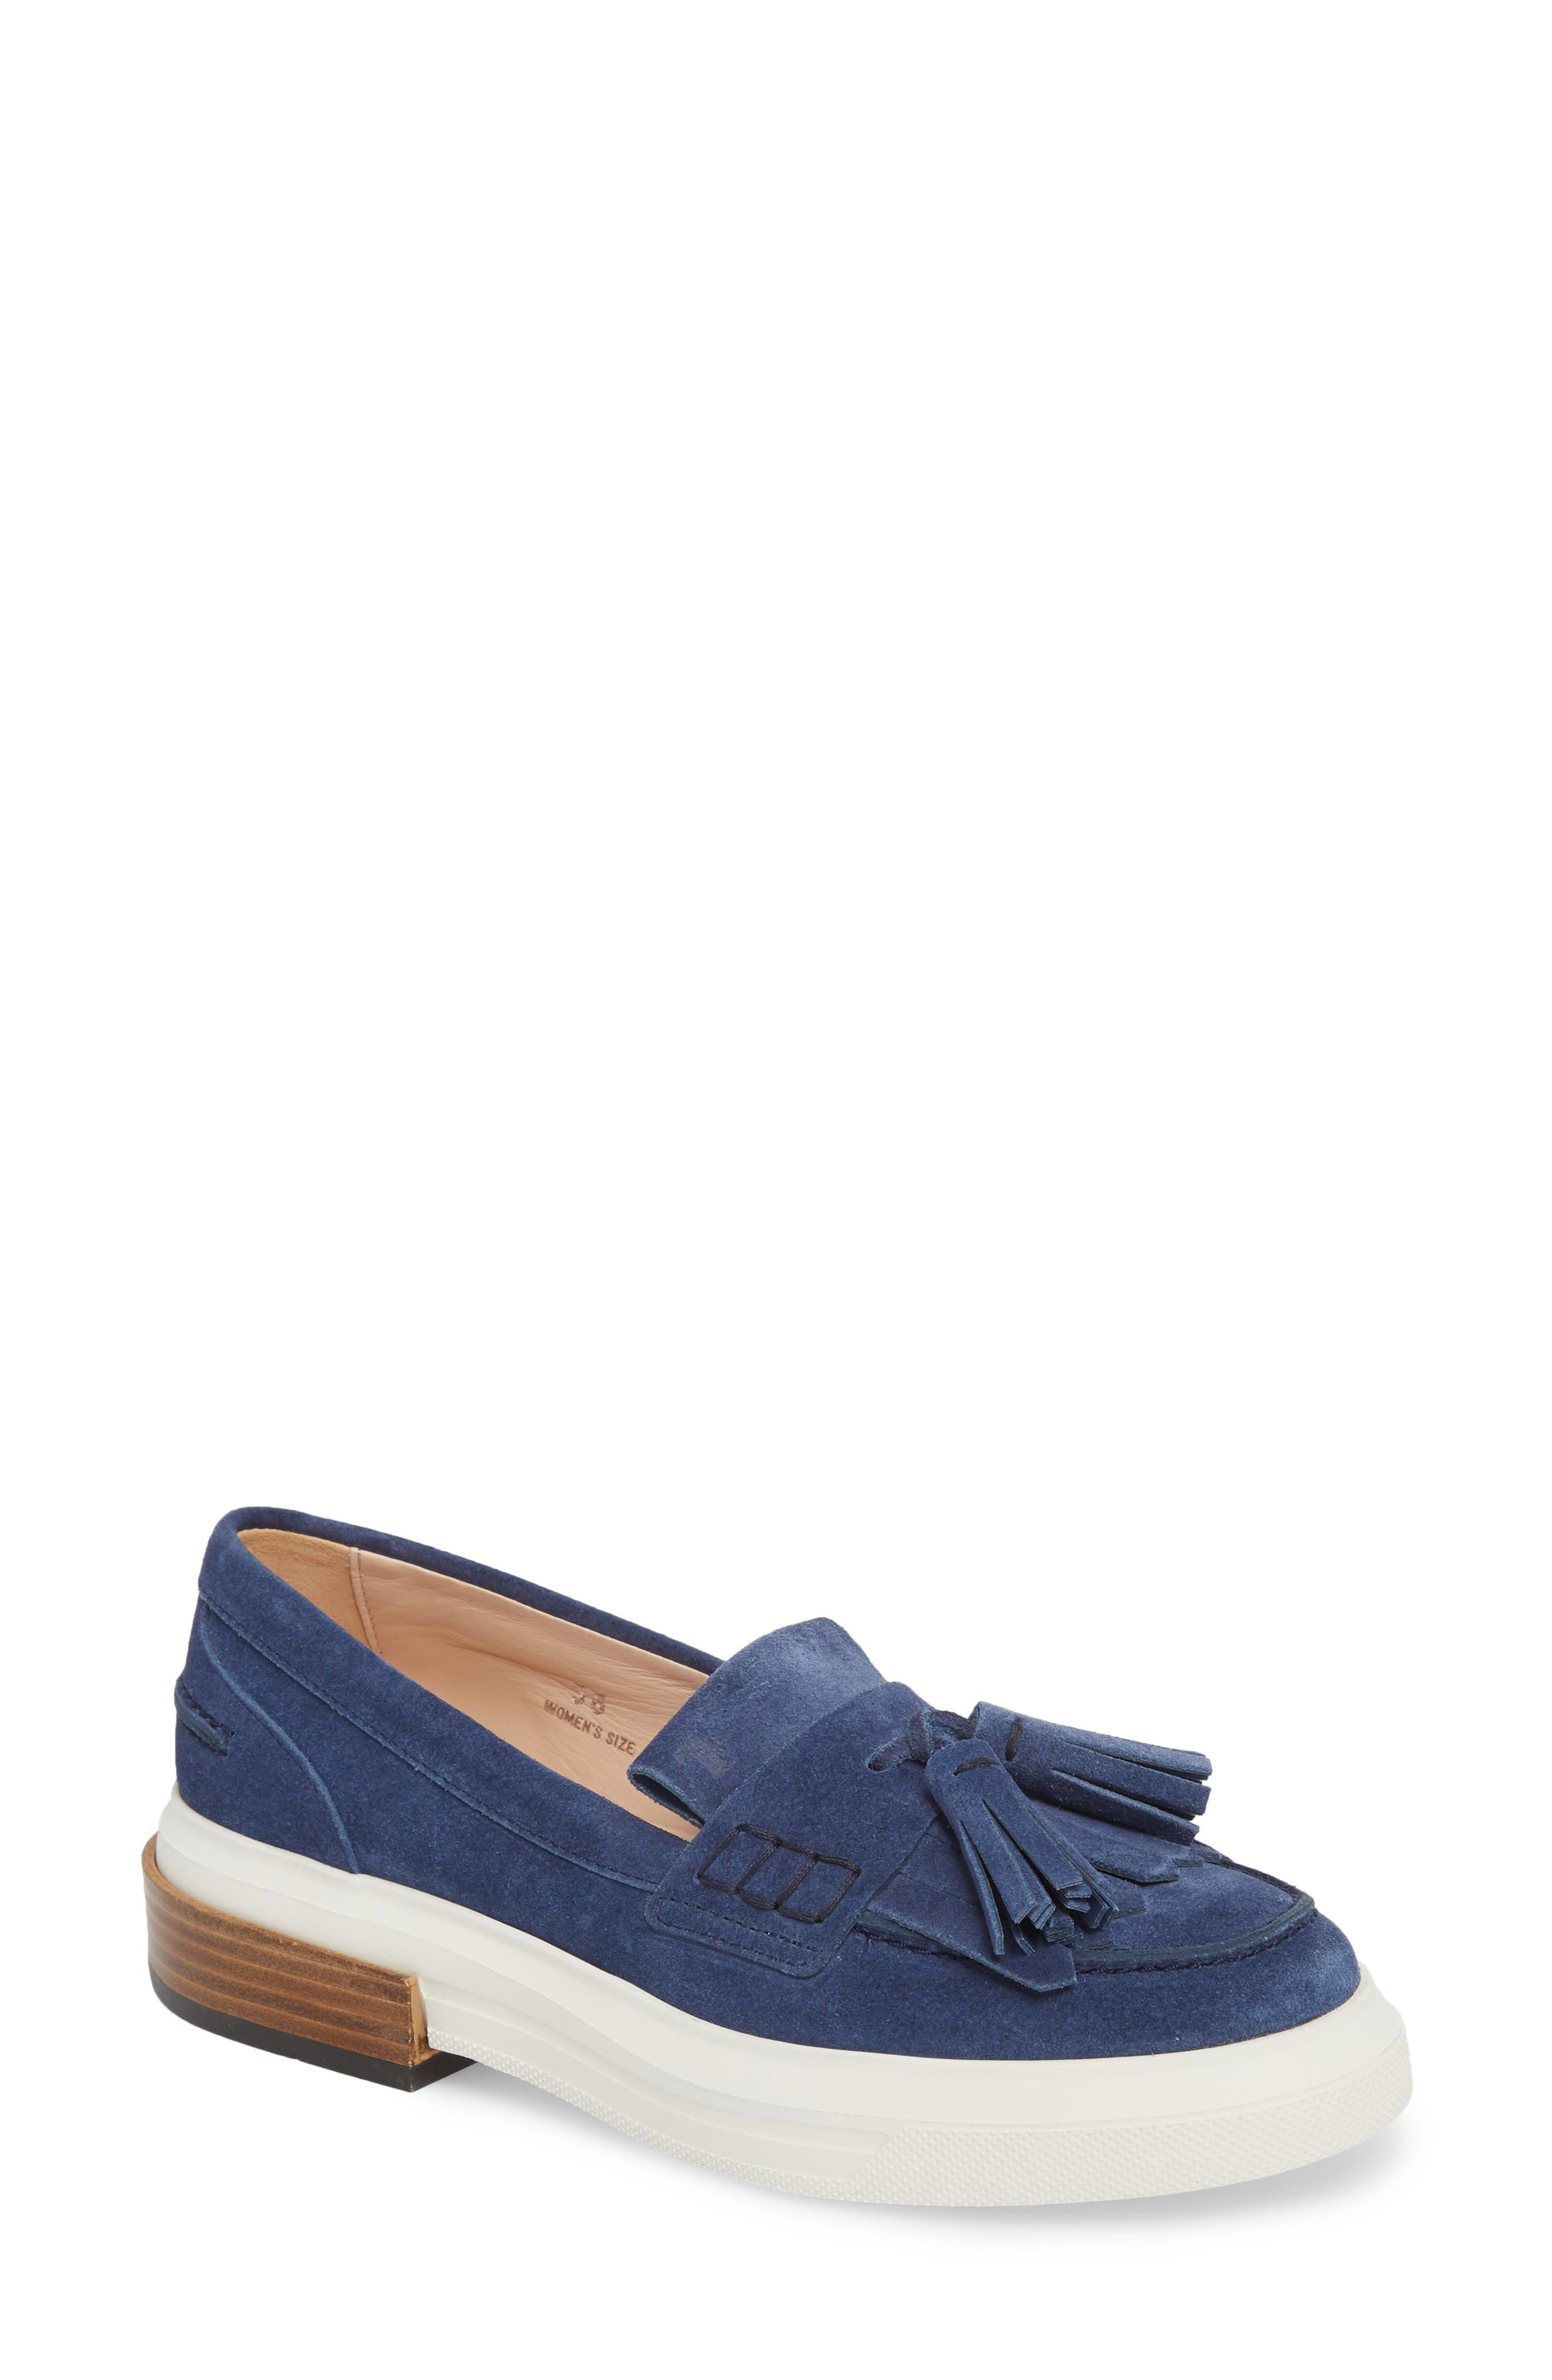 Hybrid Loafer,                             Main thumbnail 1, color,                             462